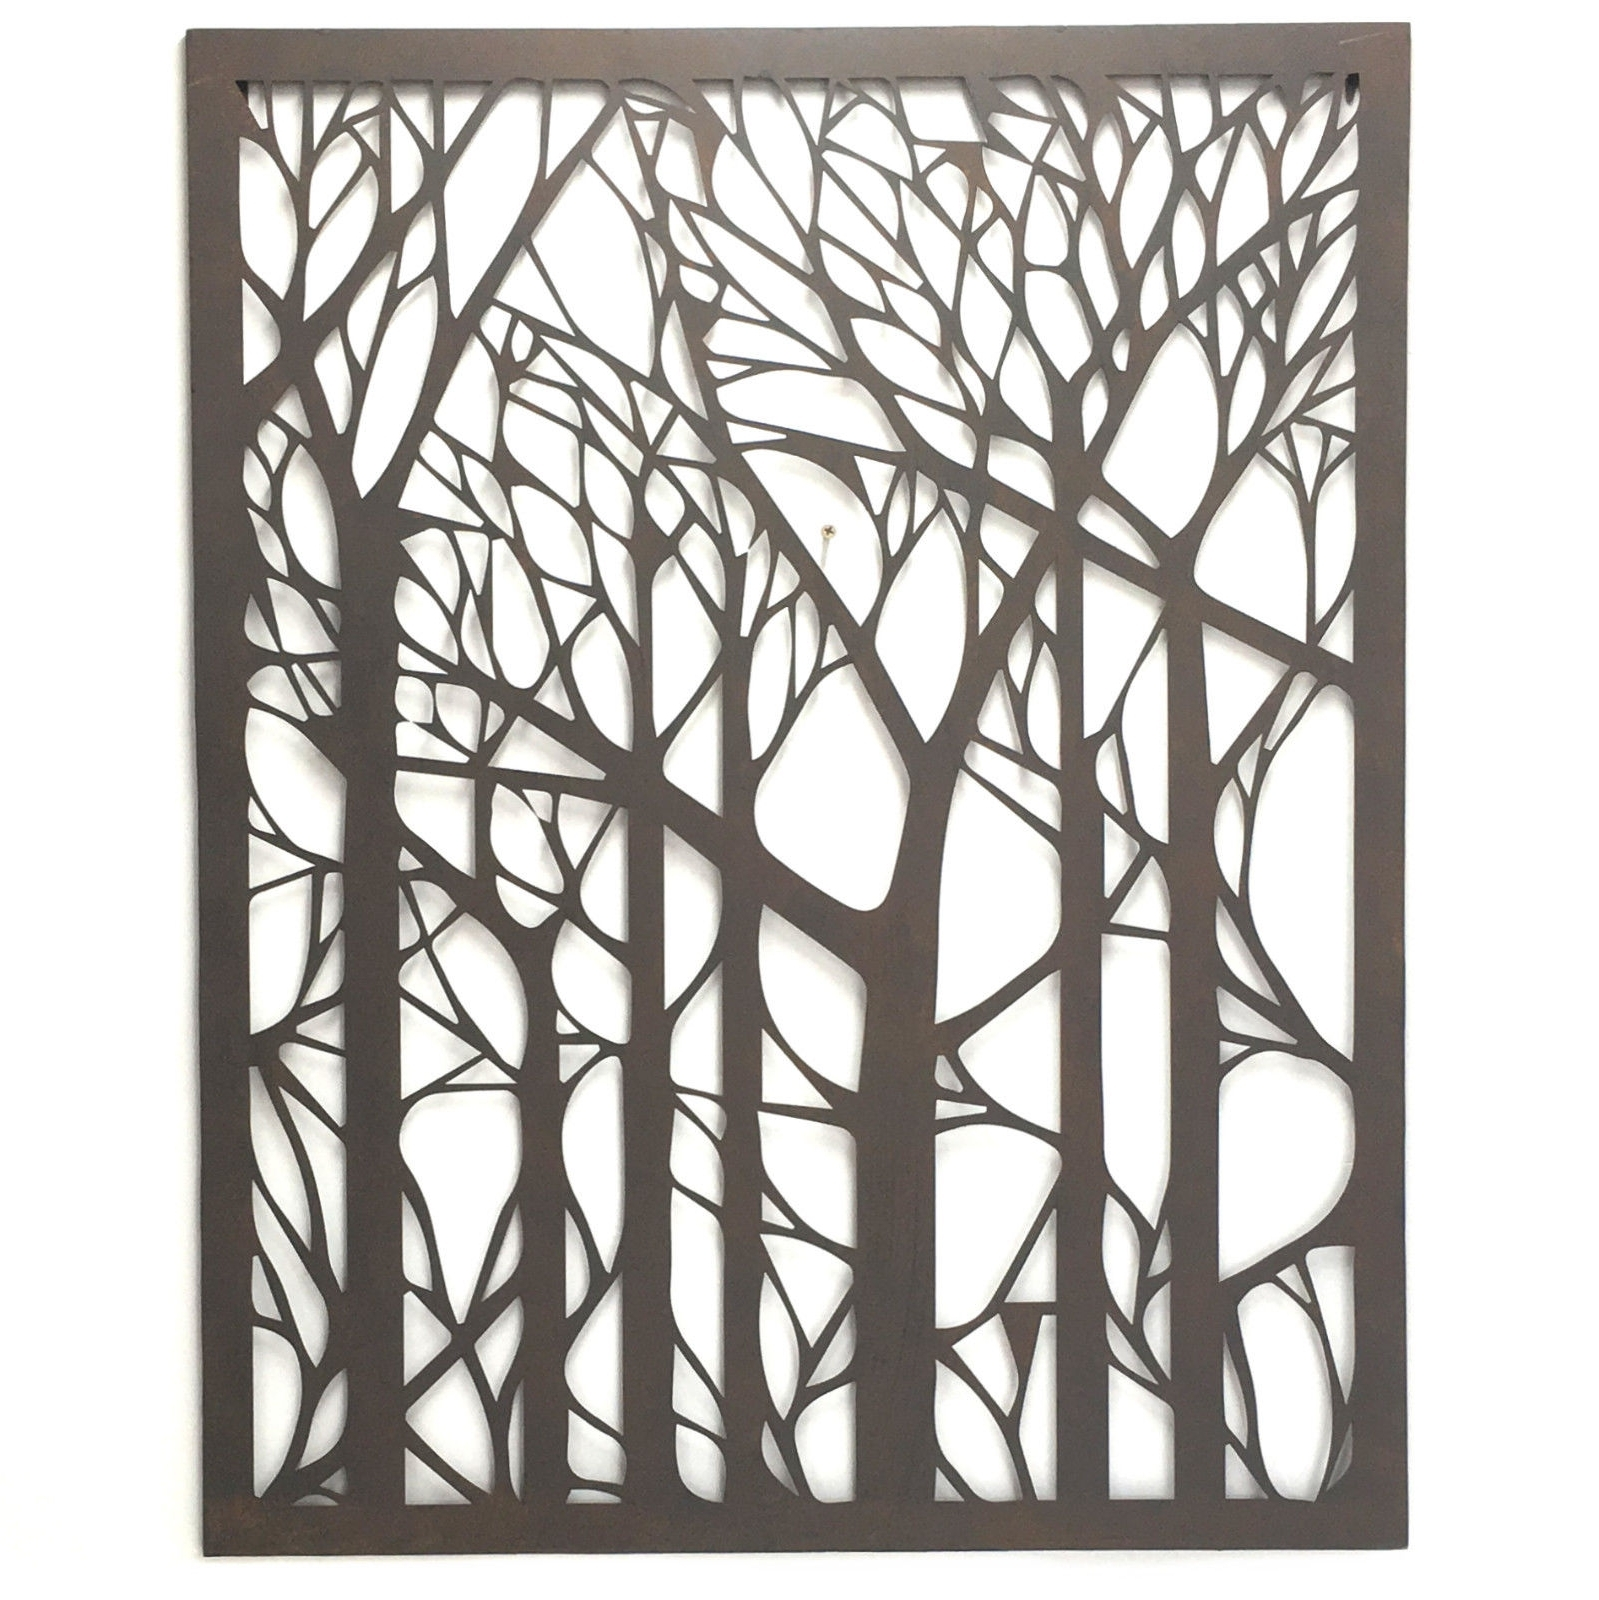 Wall Art Designs: Outdoor Wall Art Metal Tree Metal Wall Art For Most Up To Date Metal Large Outdoor Wall Art (View 5 of 15)